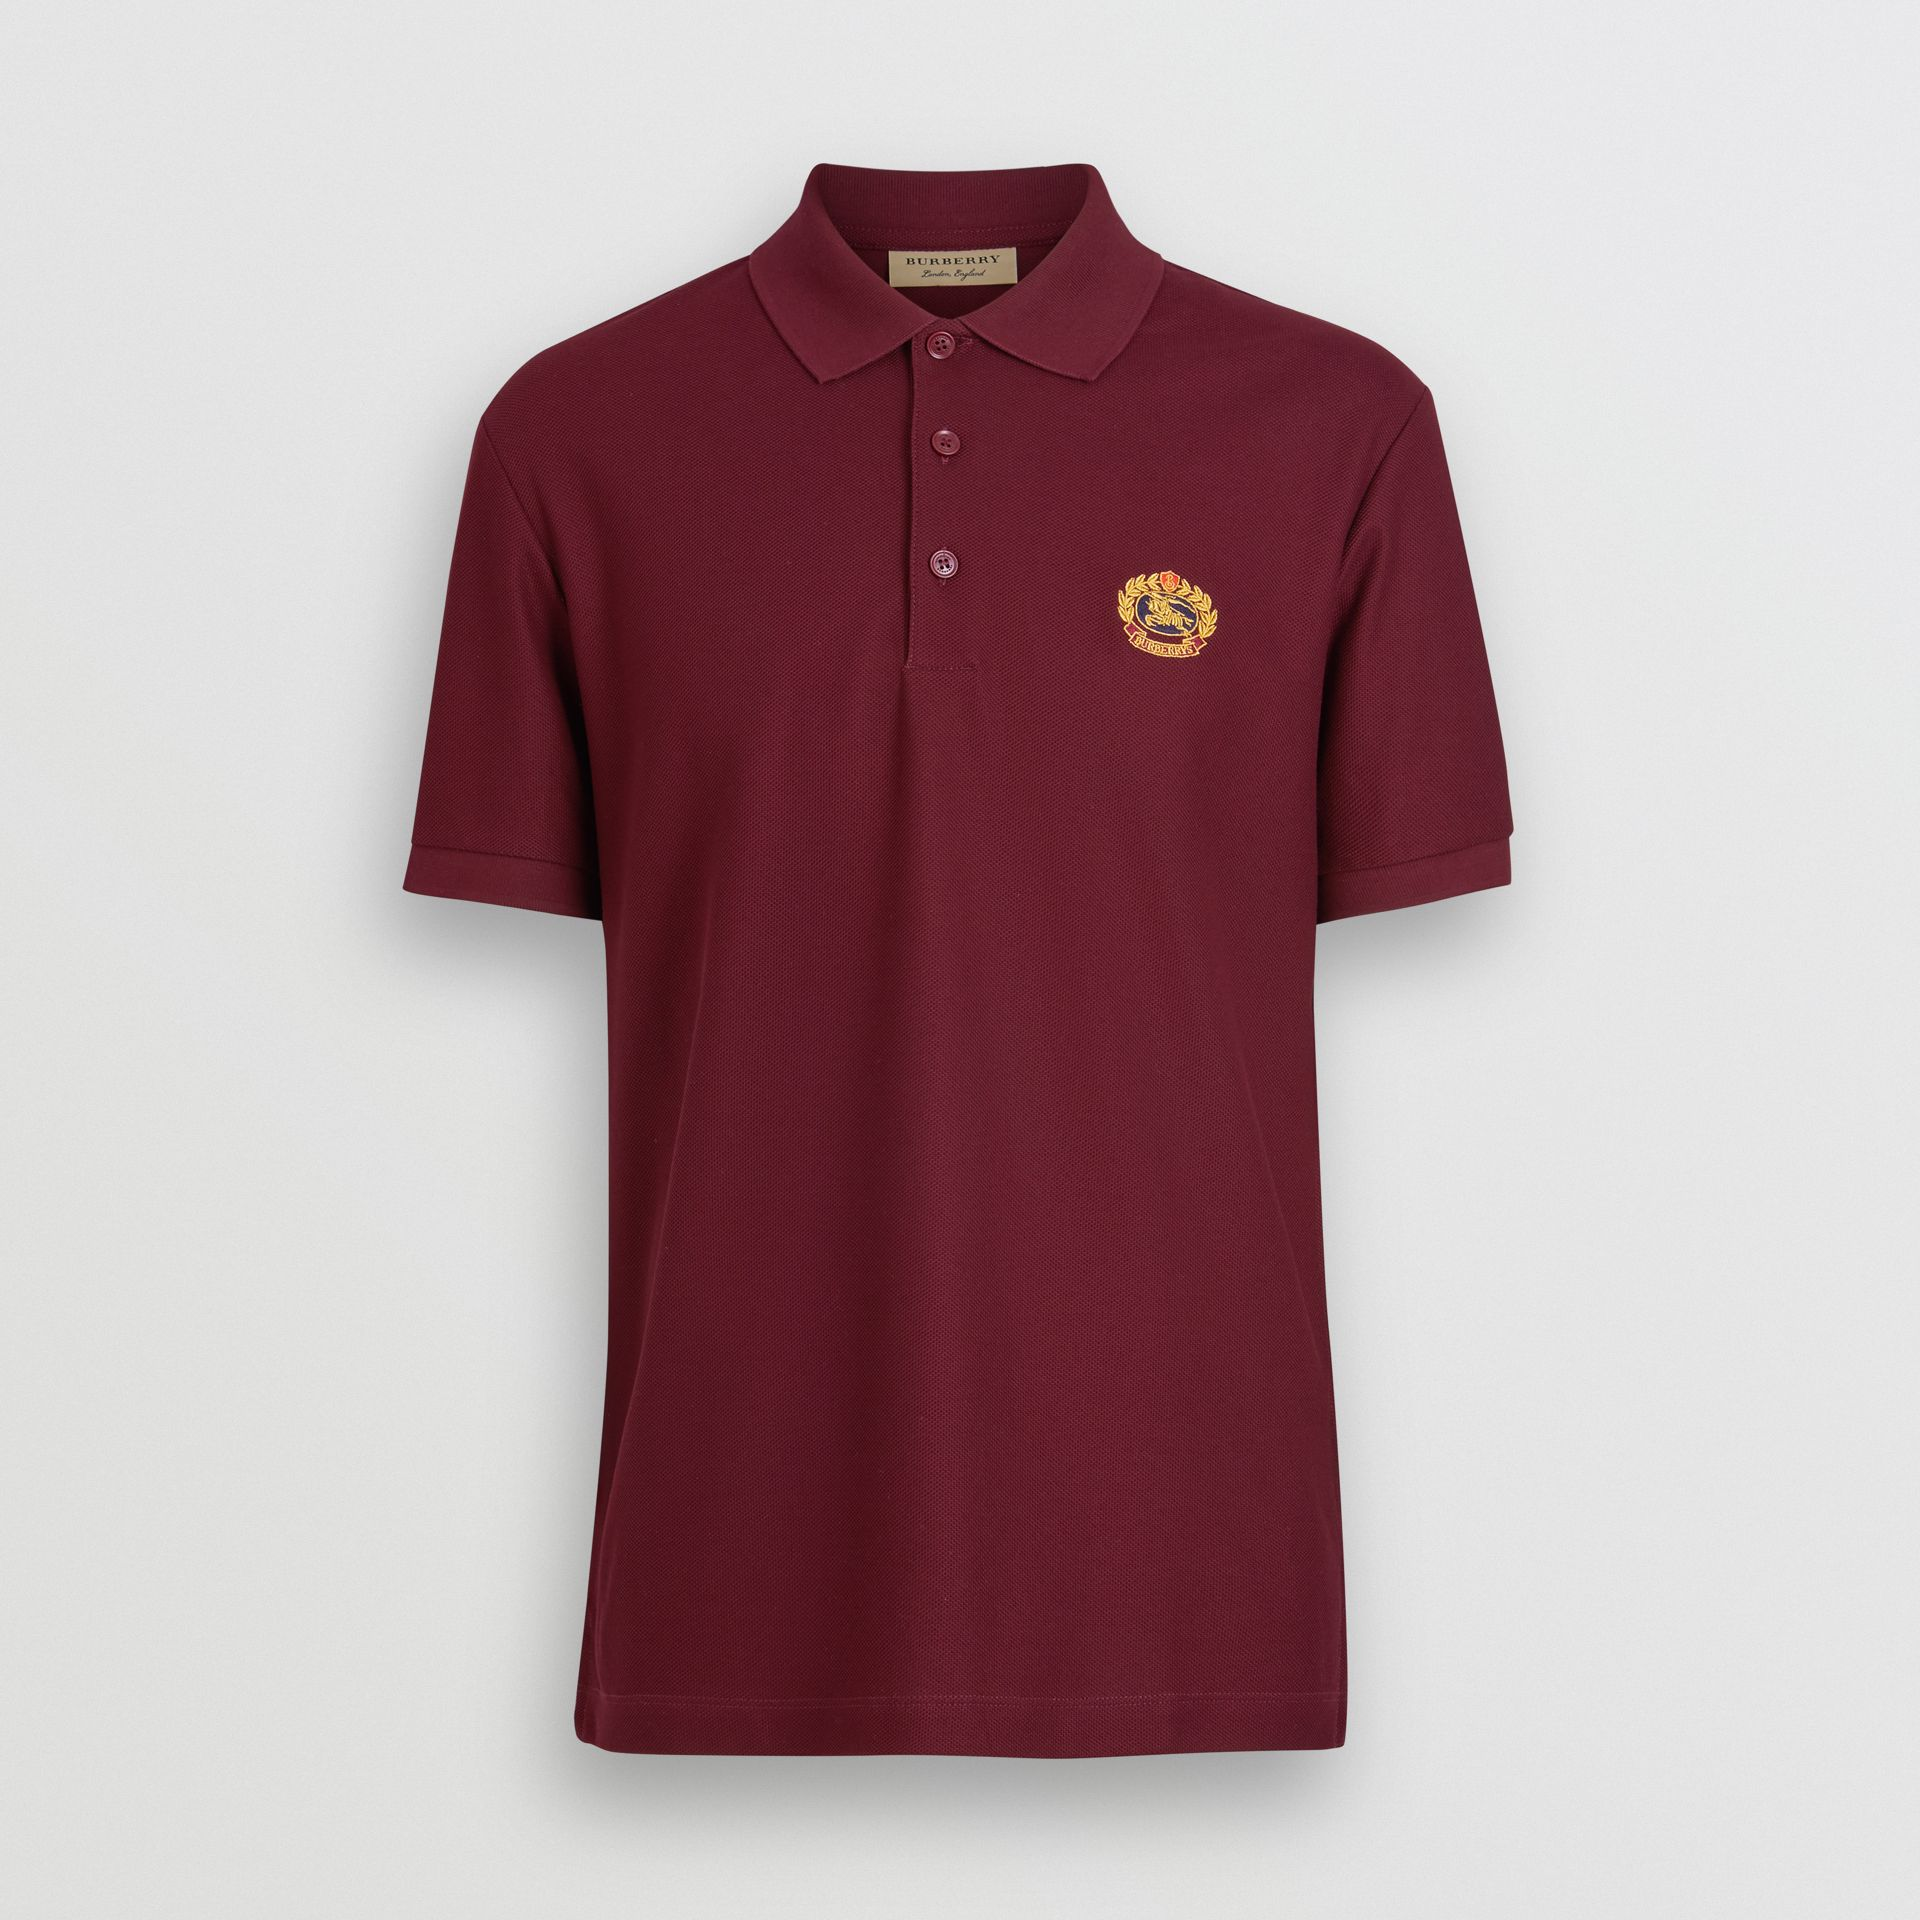 Archive Logo Cotton Piqué Polo Shirt in Burgundy - Men | Burberry - gallery image 3